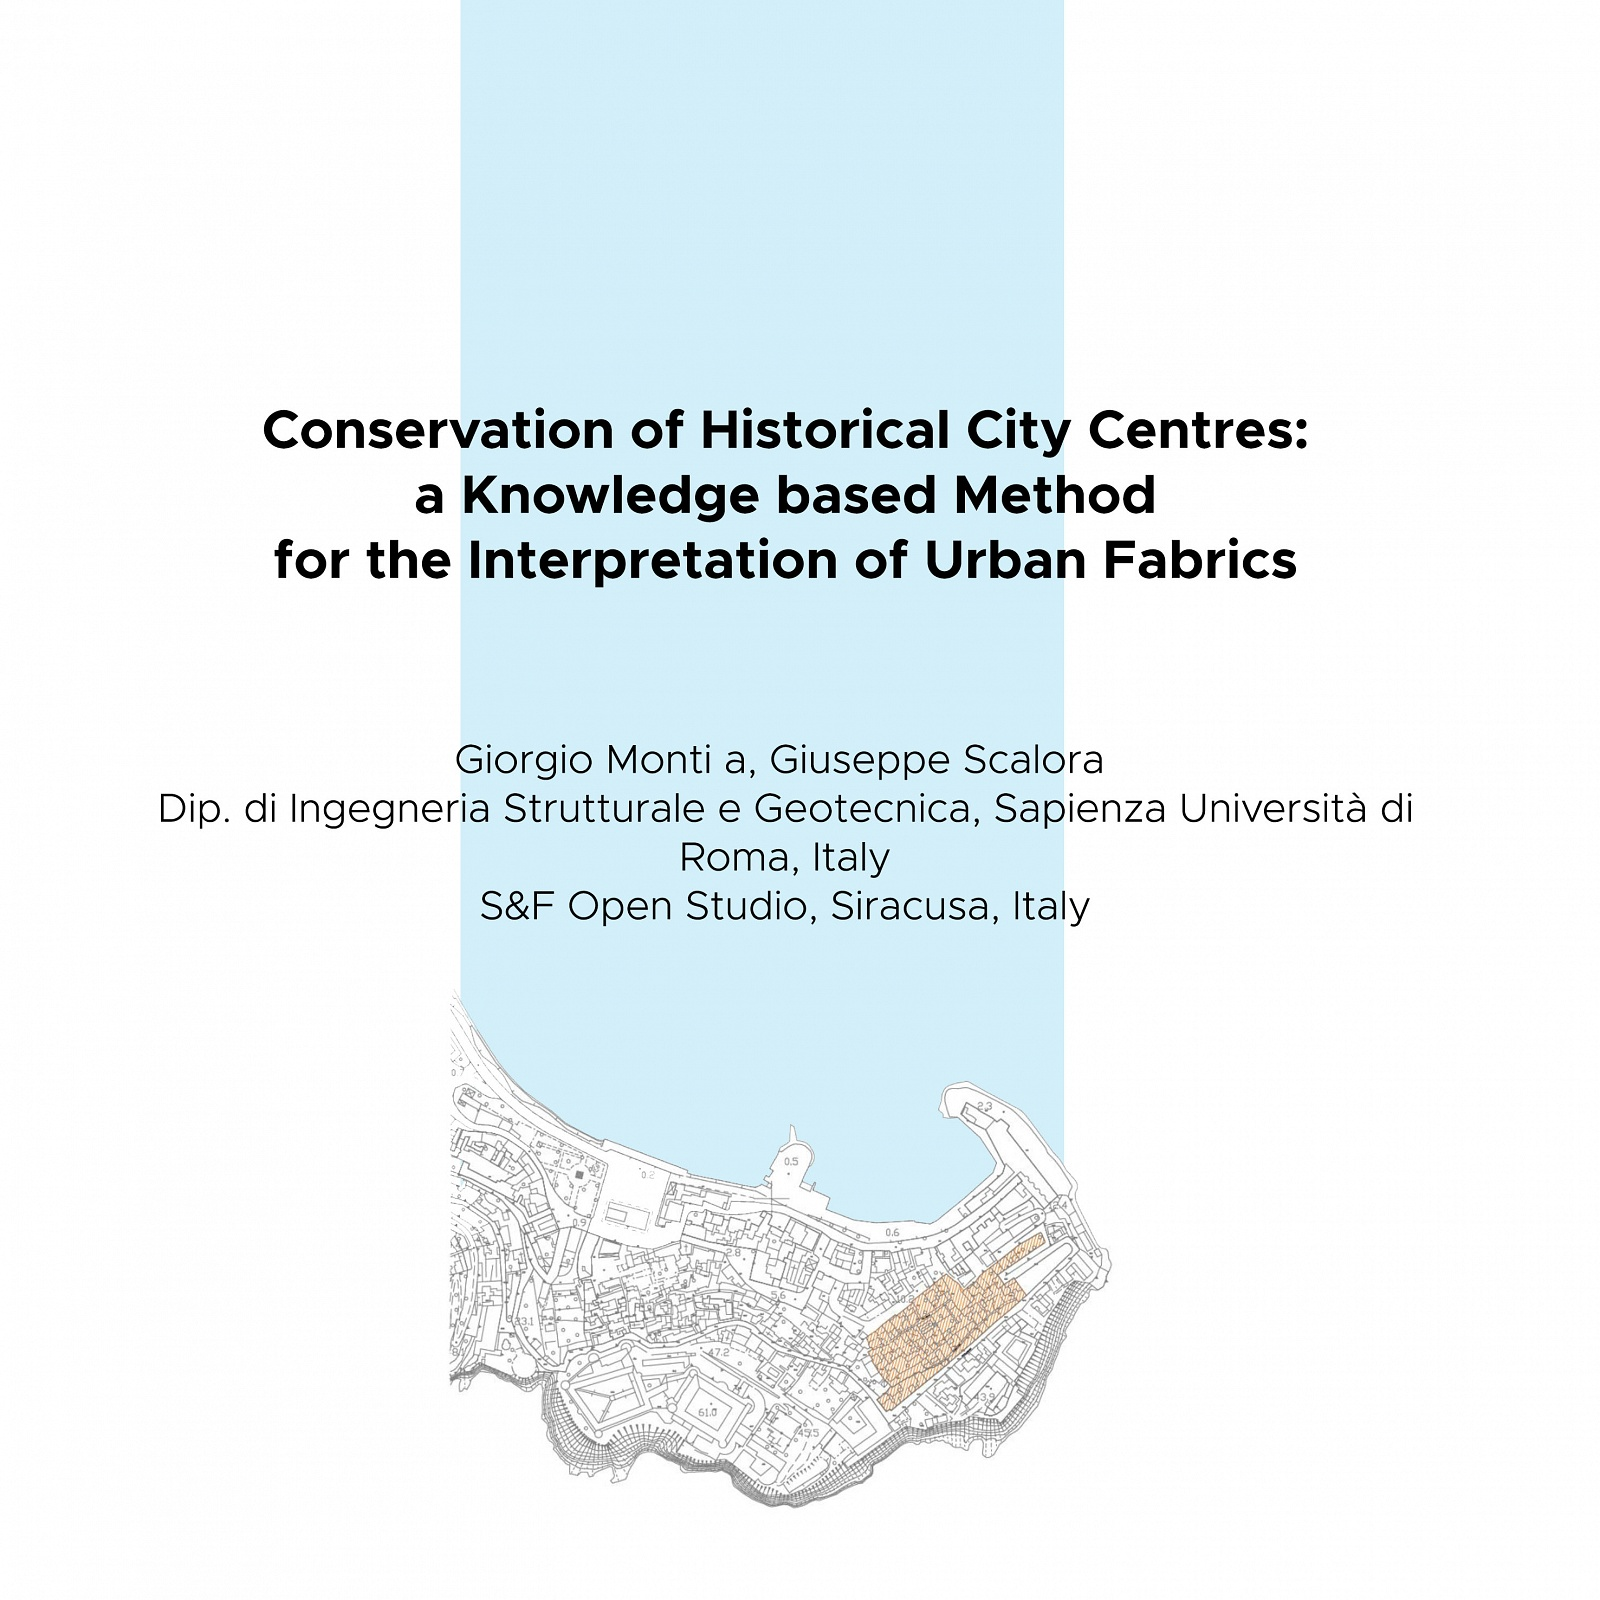 2014 - Conservation of Historical City Centres:a Knowledge based Methodfor the Interpretation of Urban Fabrics